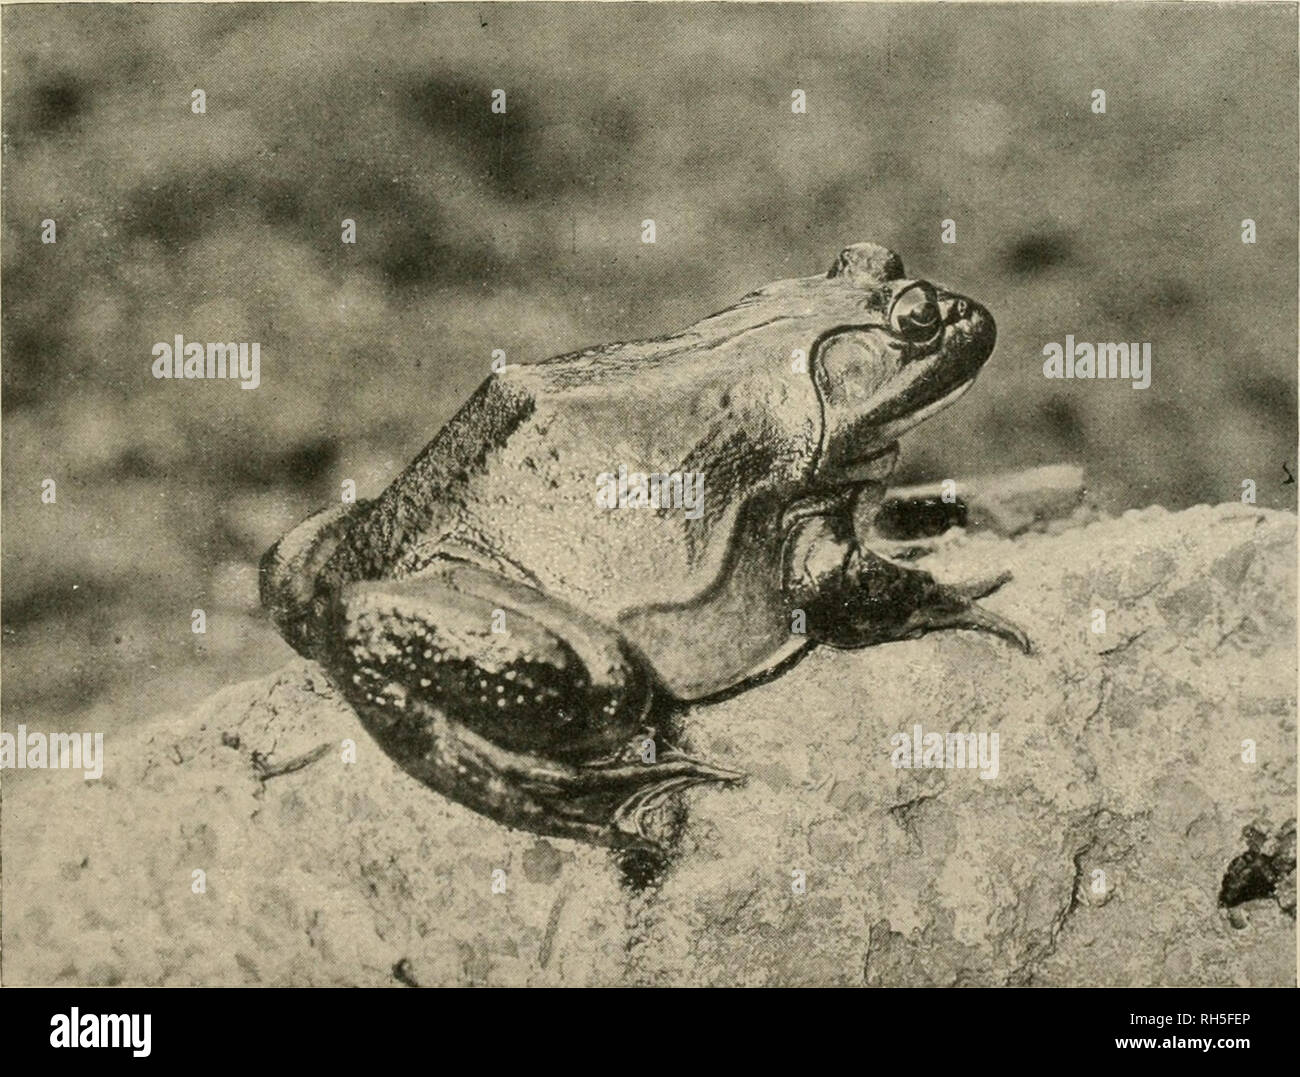 . Brehms Tierleben : allgemeine Kunde des Tierreichs . ; . I. Tigerfrosch, Rana tigrina Daitd. ^•2 nat. Gr., s. S. 311. - W. S. Berridge, F. Z. S.-London phot.. 2. Ochsenfrosch, Rana catesbj'ana Shaw. Va nat. Gr., 8.5.3(16. - Tlie Sctiolastic Photographic Co.-London phot.. Please note that these images are extracted from scanned page images that may have been digitally enhanced for readability - coloration and appearance of these illustrations may not perfectly resemble the original work.. Brehm, Alfred Edmund, 1829-1884; havior. Stock Photo